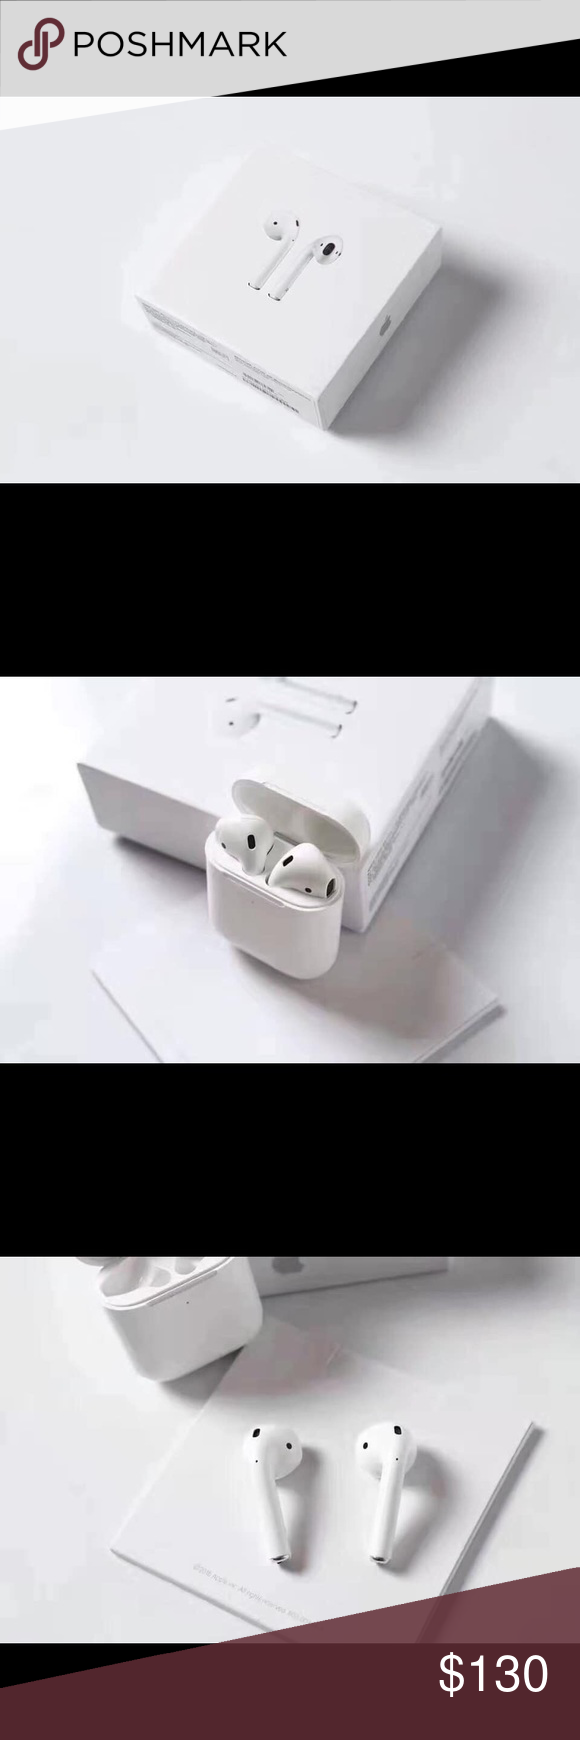 AirPods Apple AirPods Other | Things to sell, Clothes ...